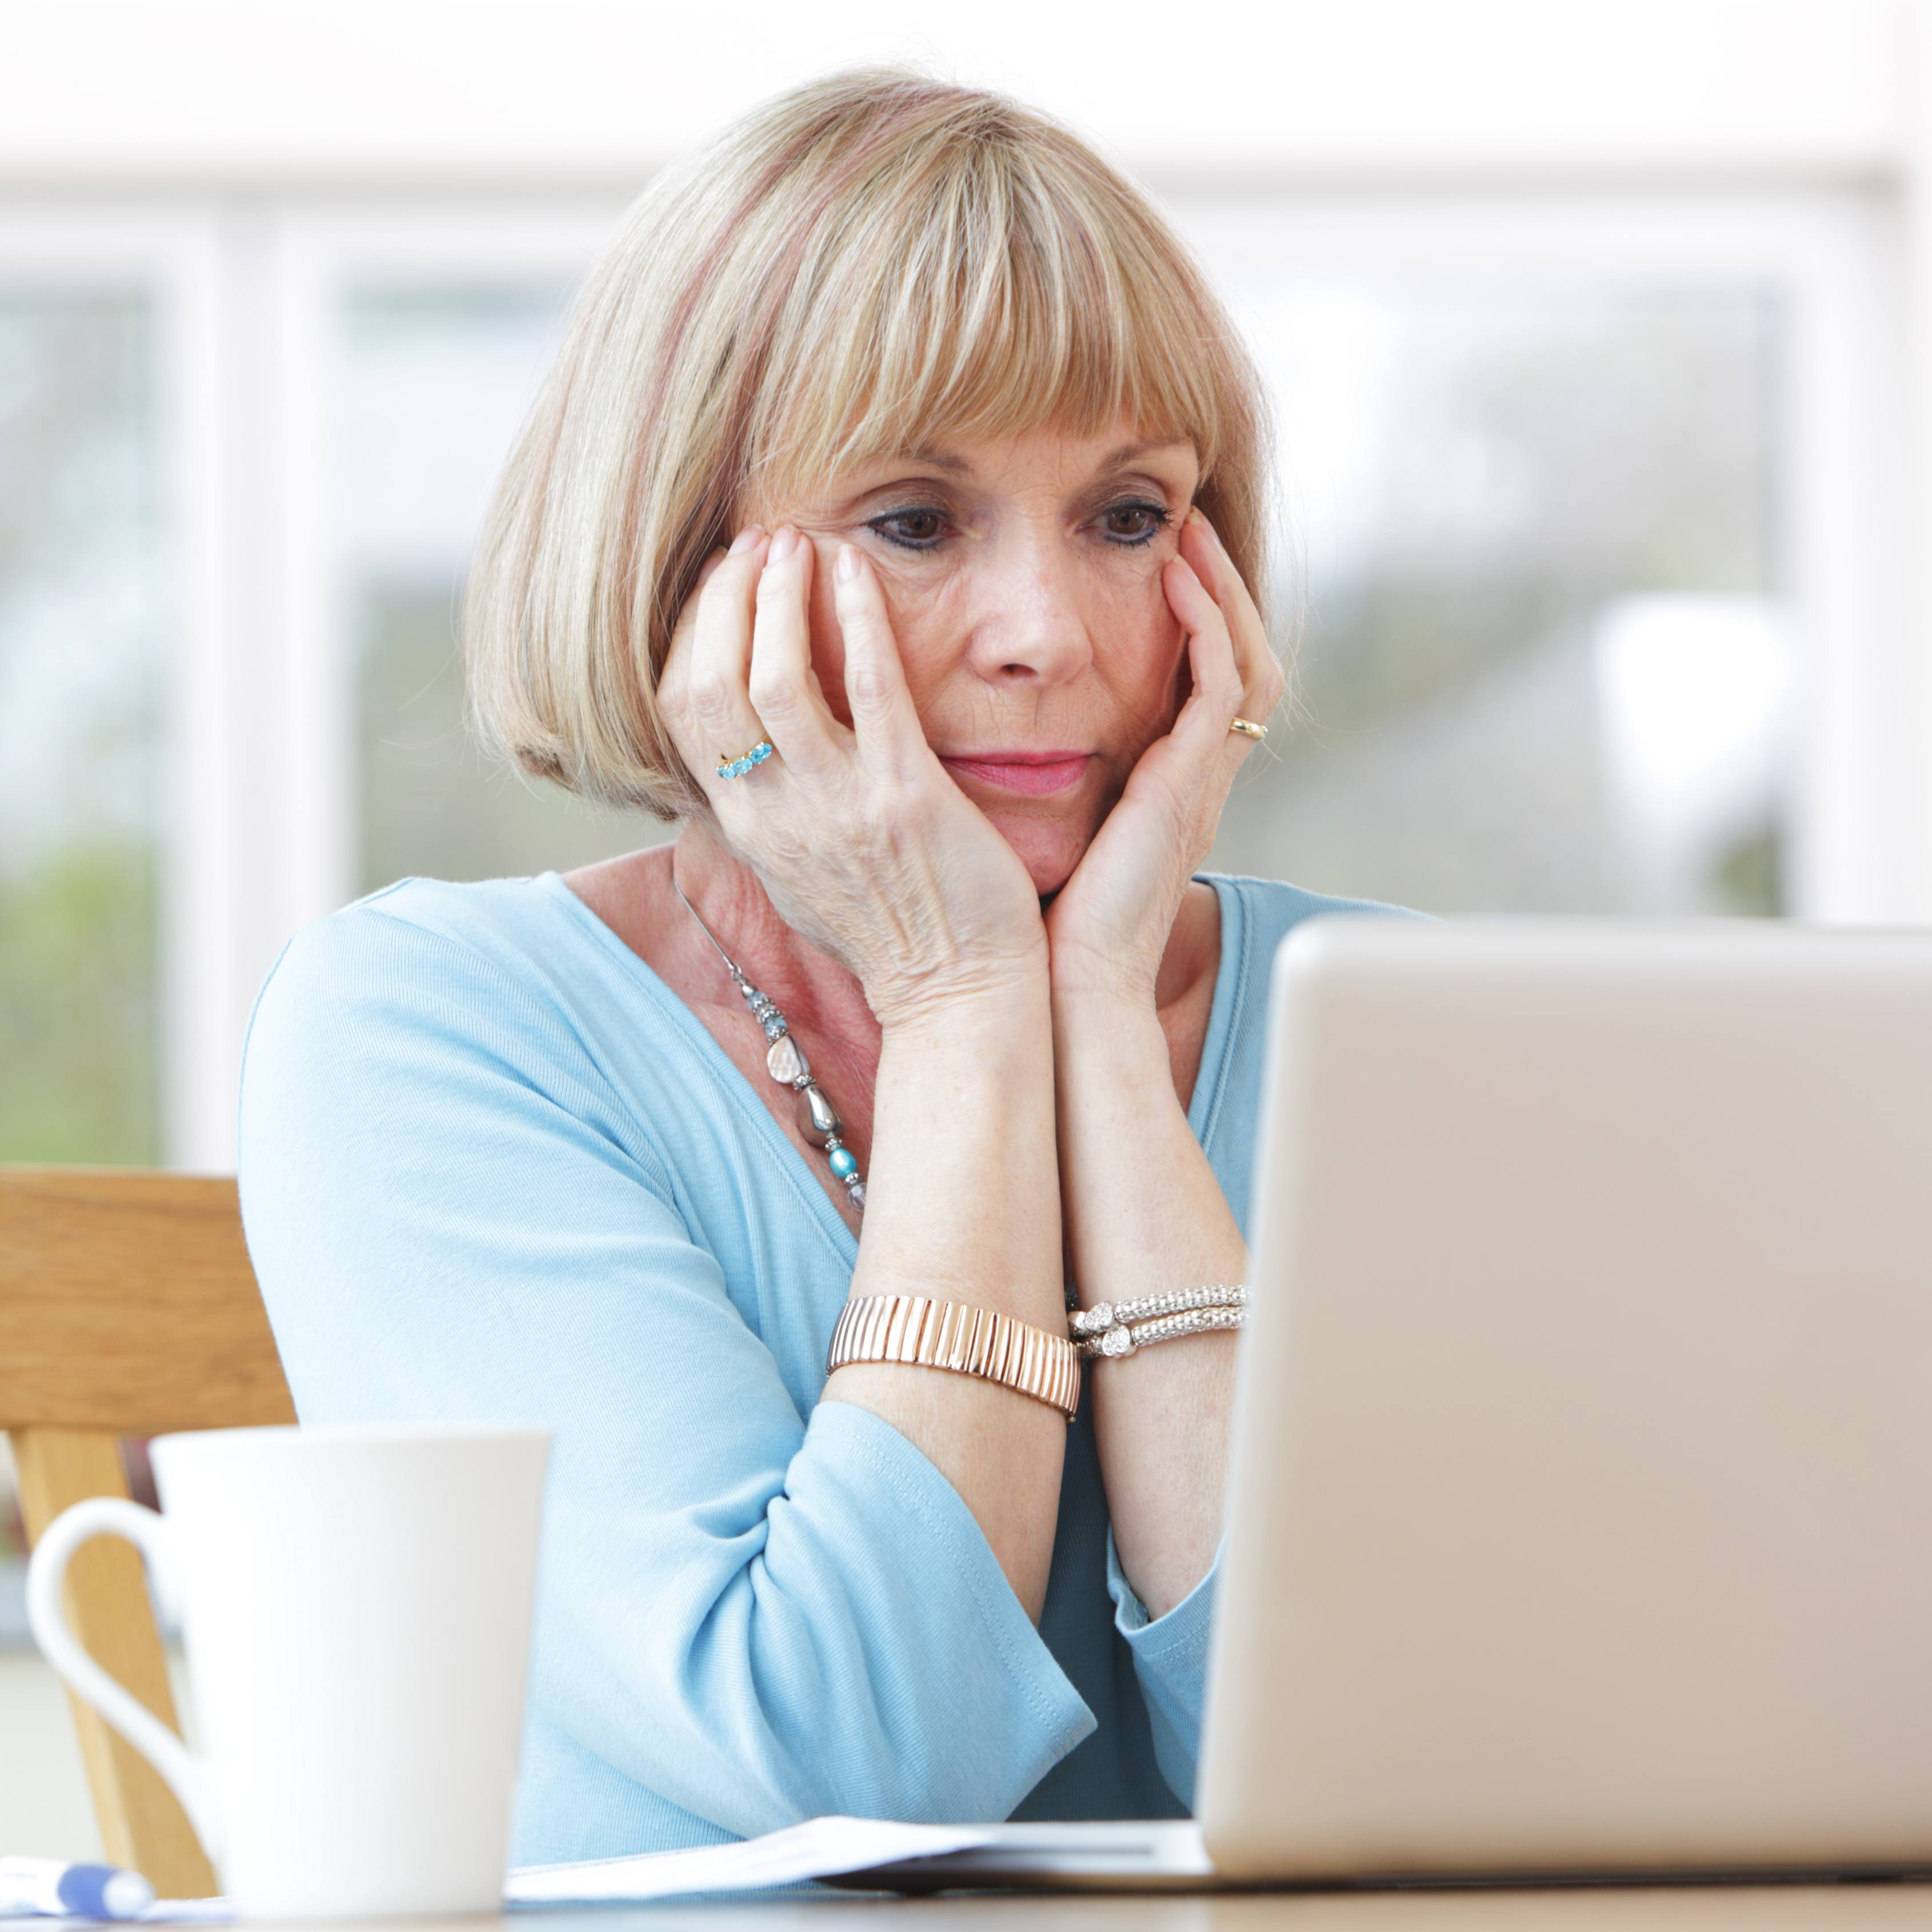 a middle-aged white woman worried, concerned with her head in her hands looking at a computer laptop